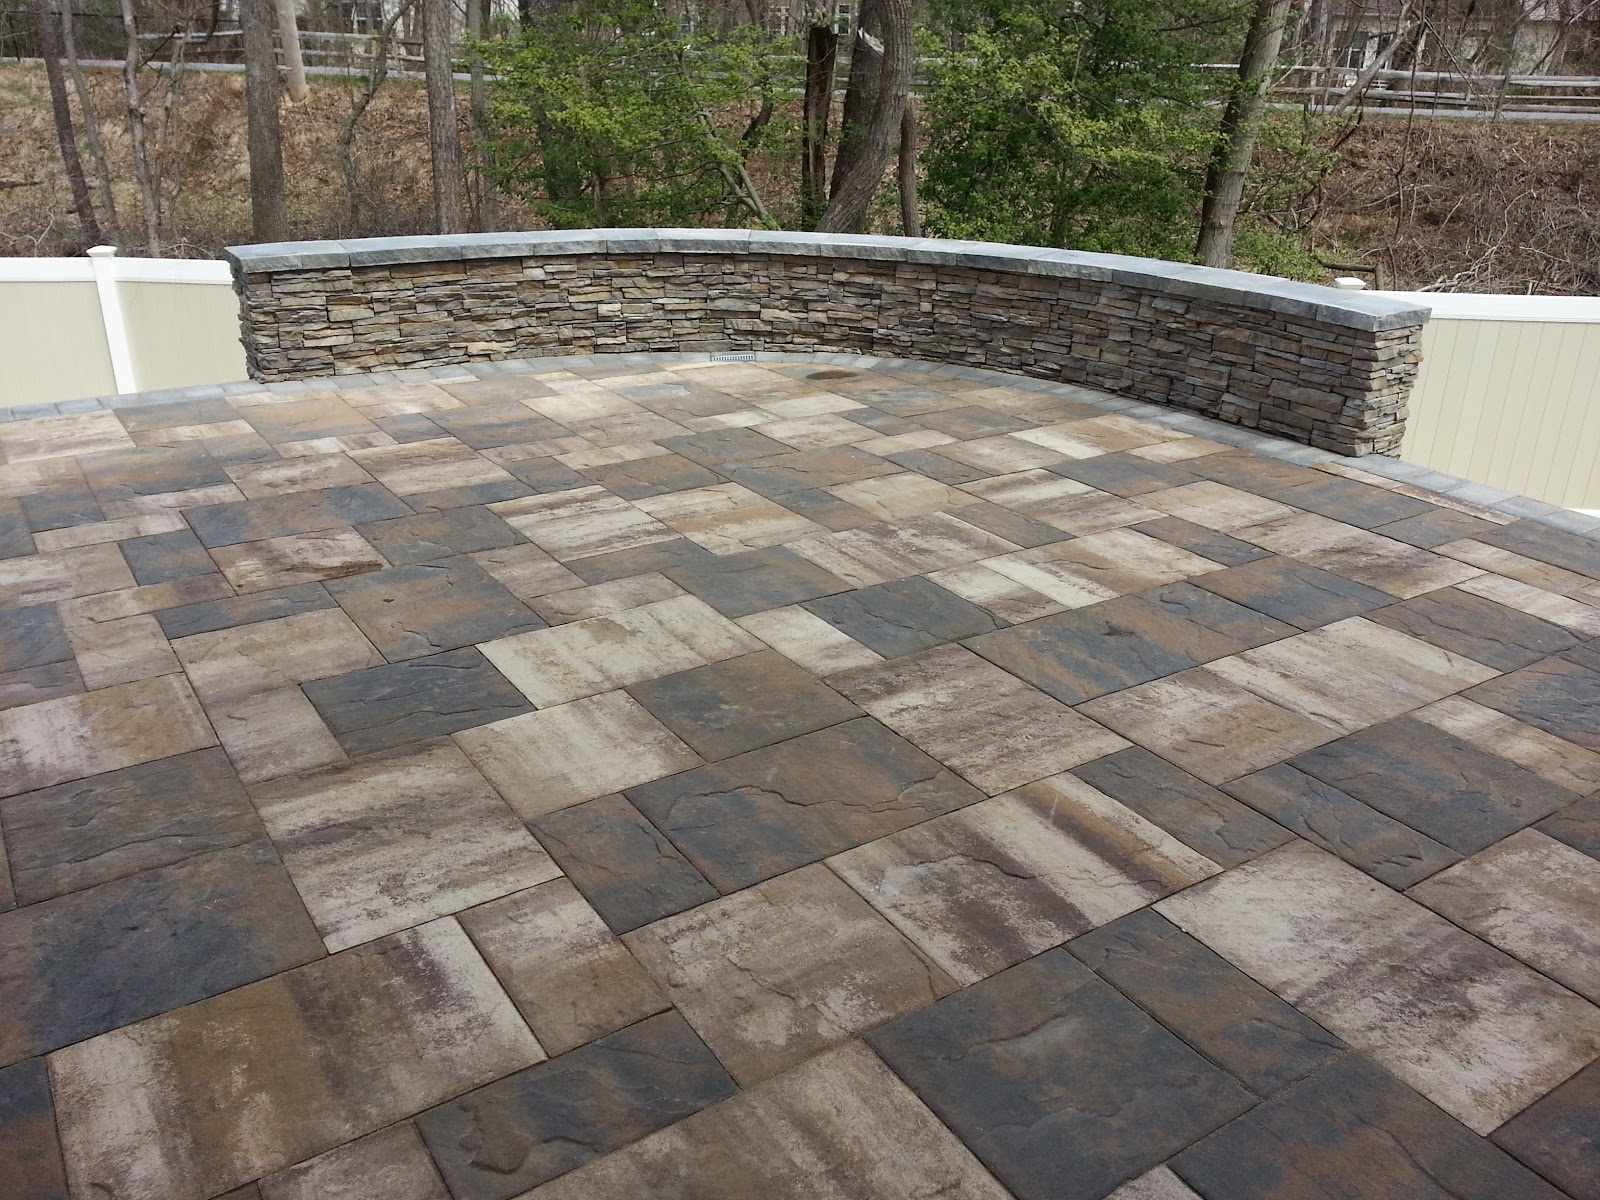 The Stone Wall Was Constructed With Concrete Block And Veneered With  Eldorado Nantucket Stacked Stone. The Wall Was Capped With The Cambridge  Ledgestone Cap ...